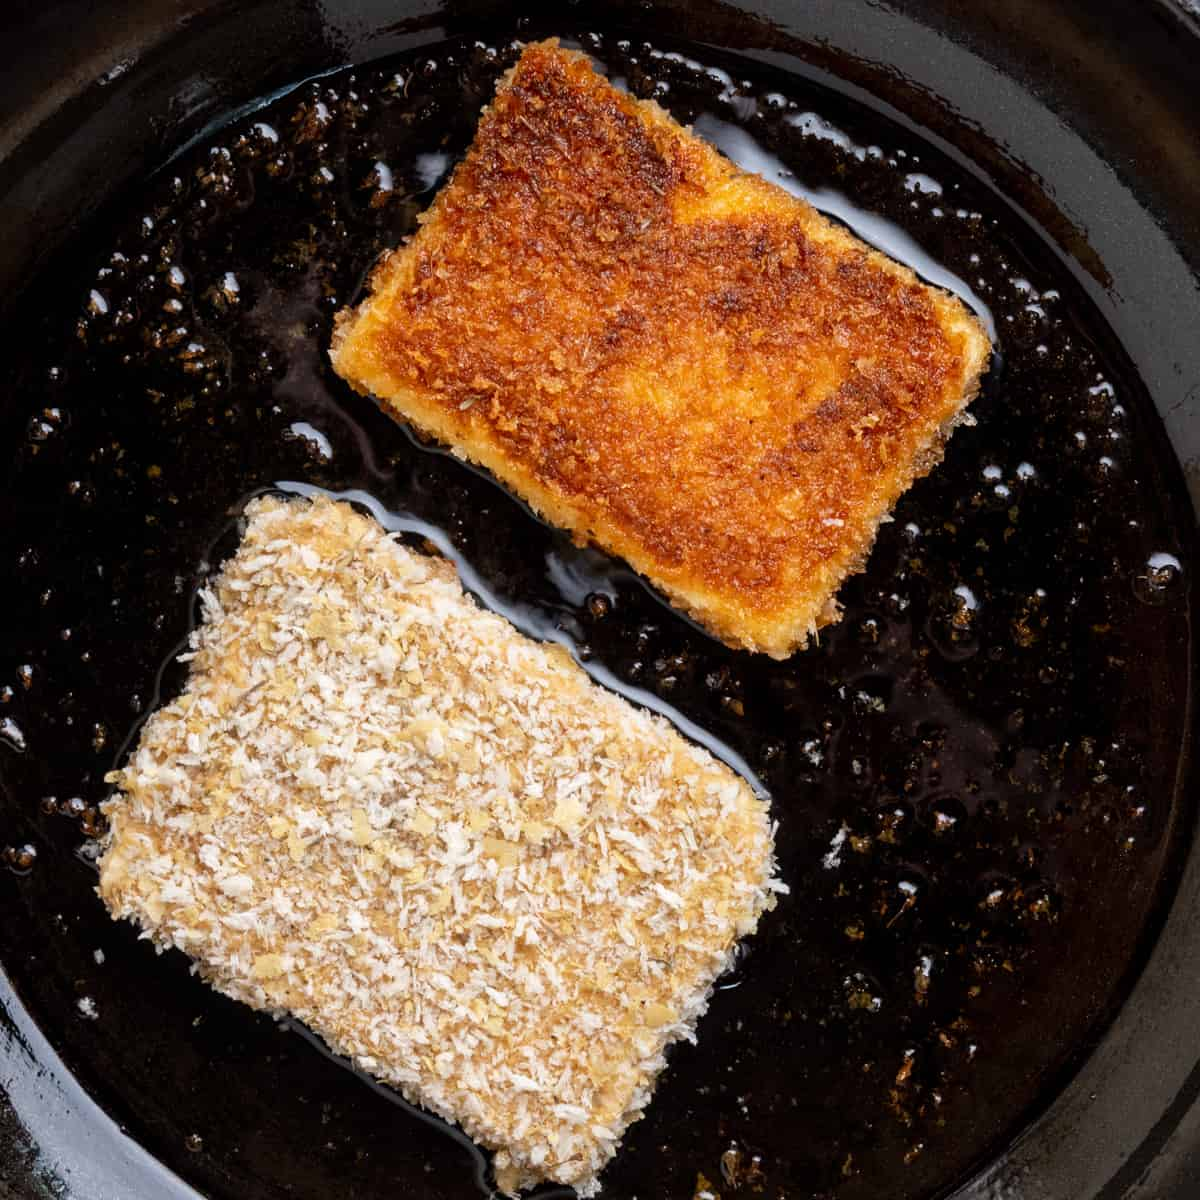 Two slices of tofu coated in breadcrumbs in a frying pan. One is pale on top, the other golden brown after being turned over in the pan.